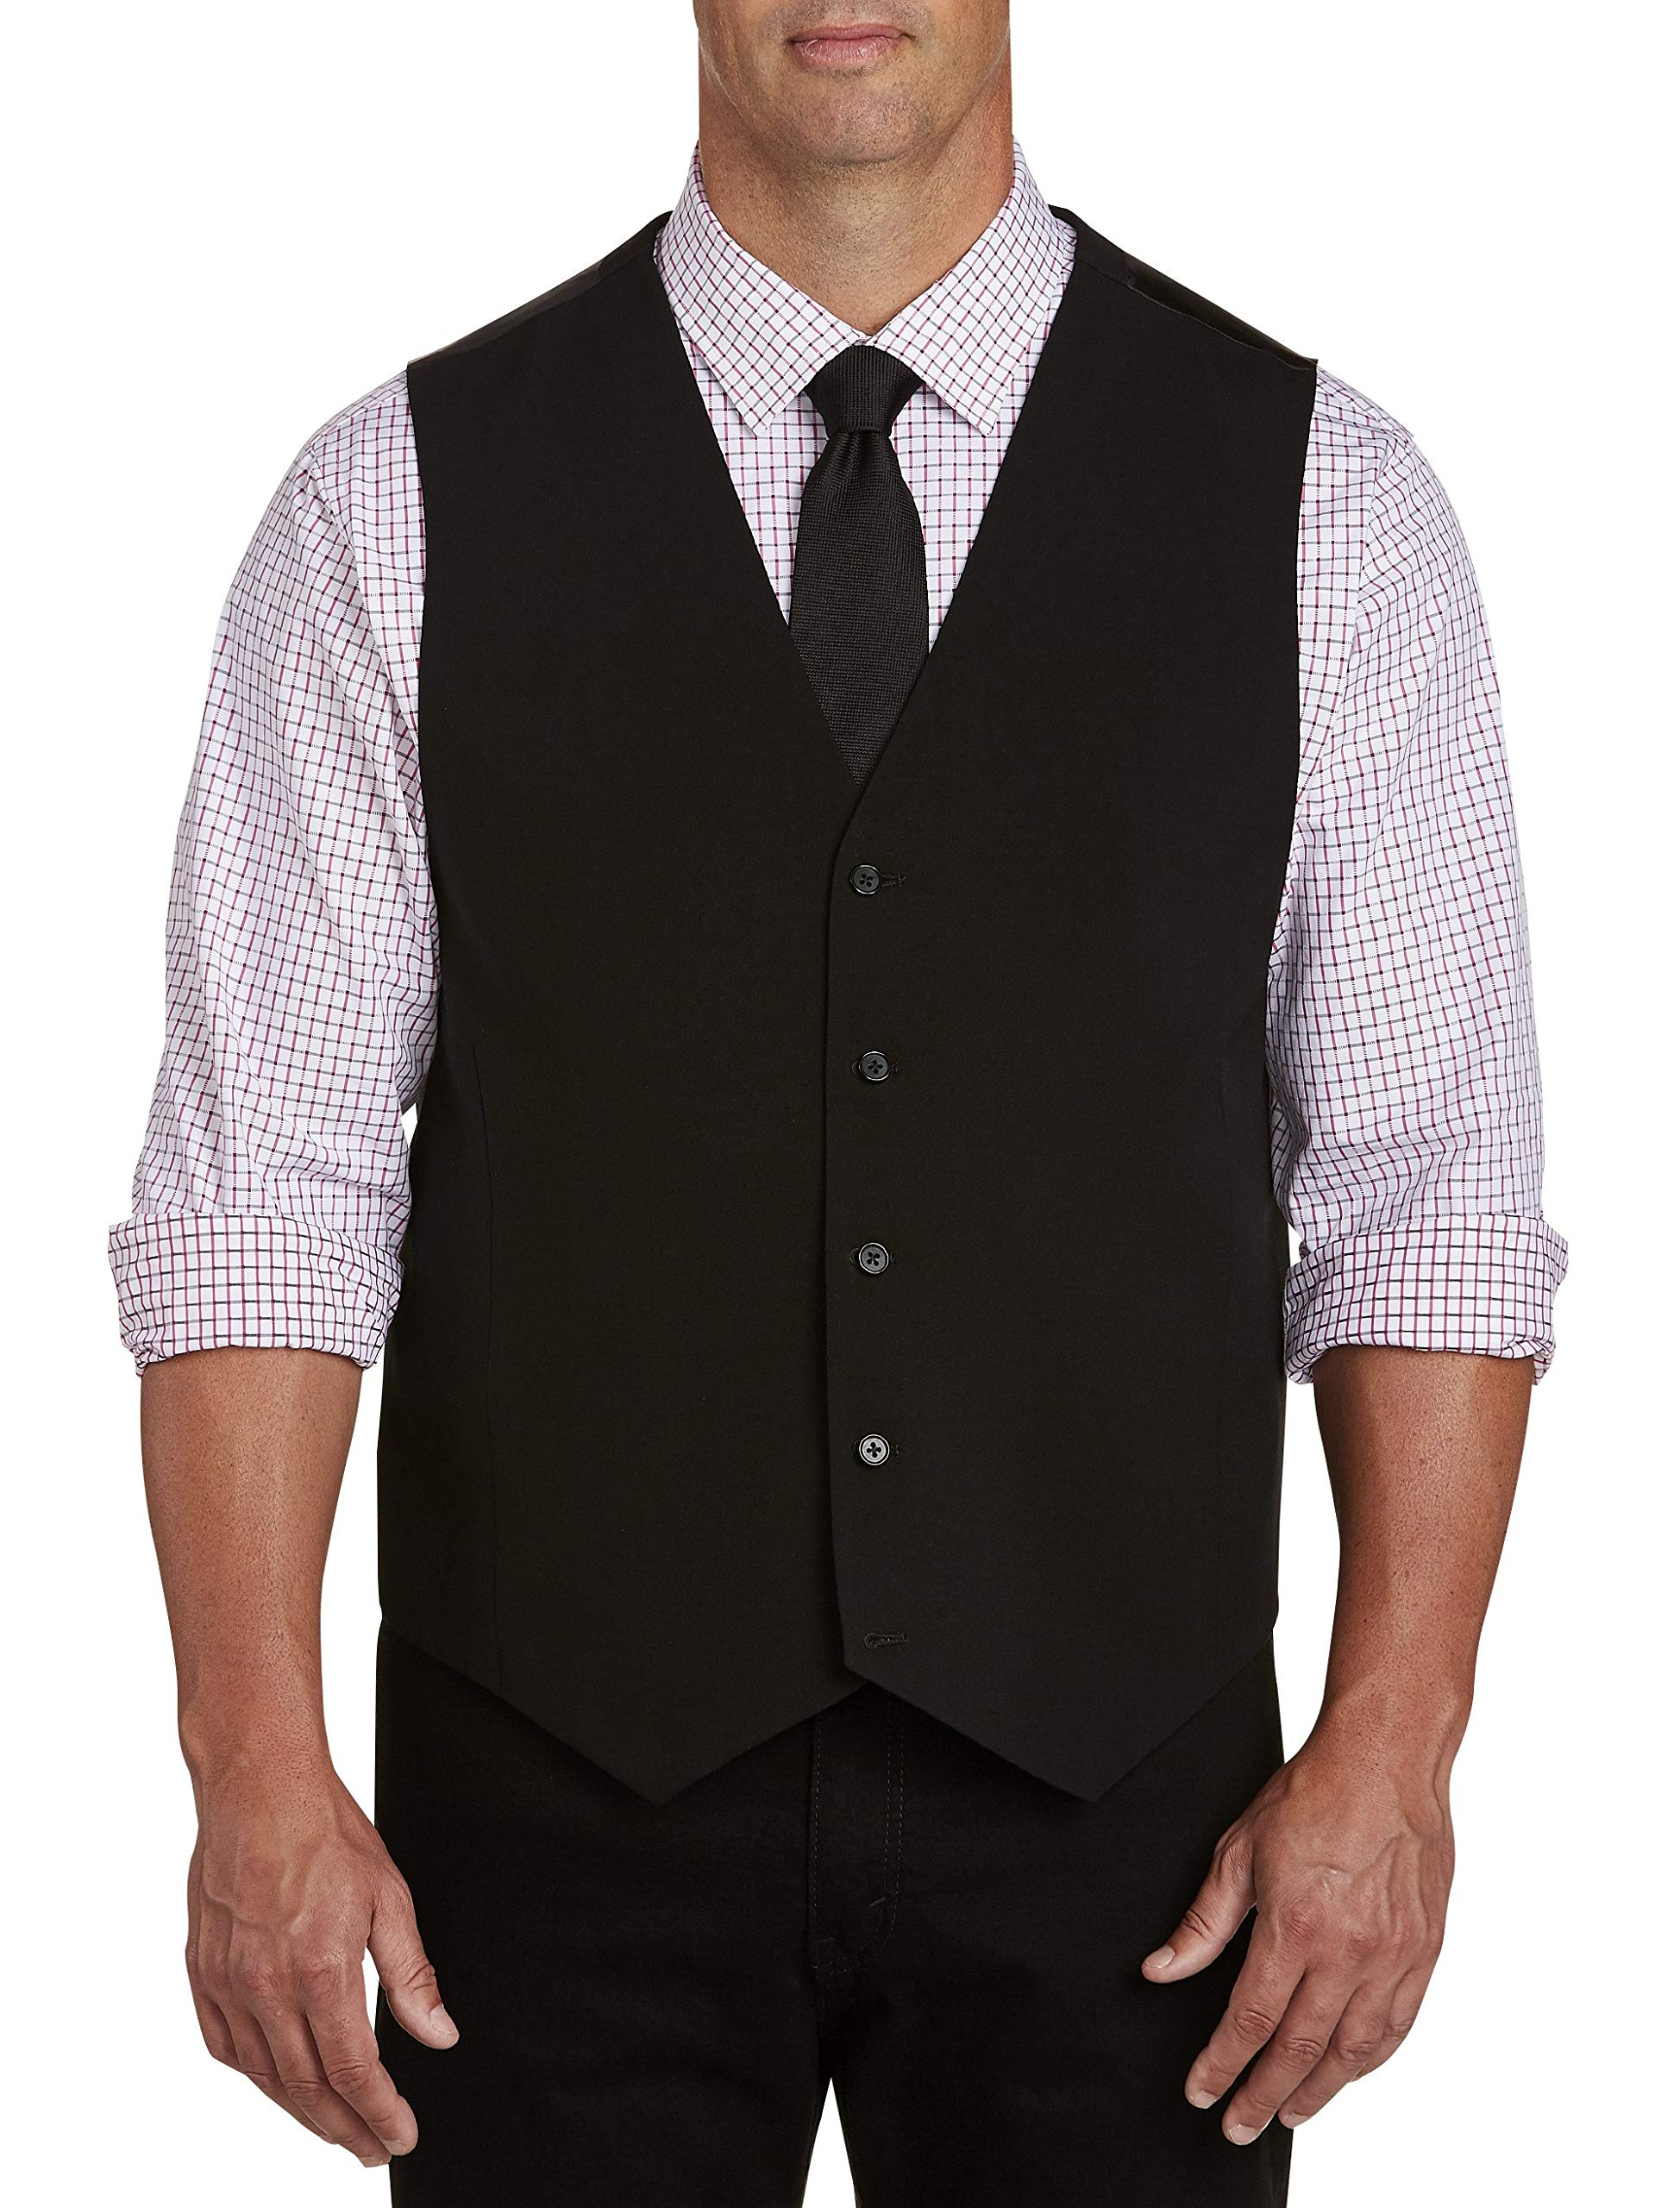 Synrgy by DXL Big and Tall Vest Black